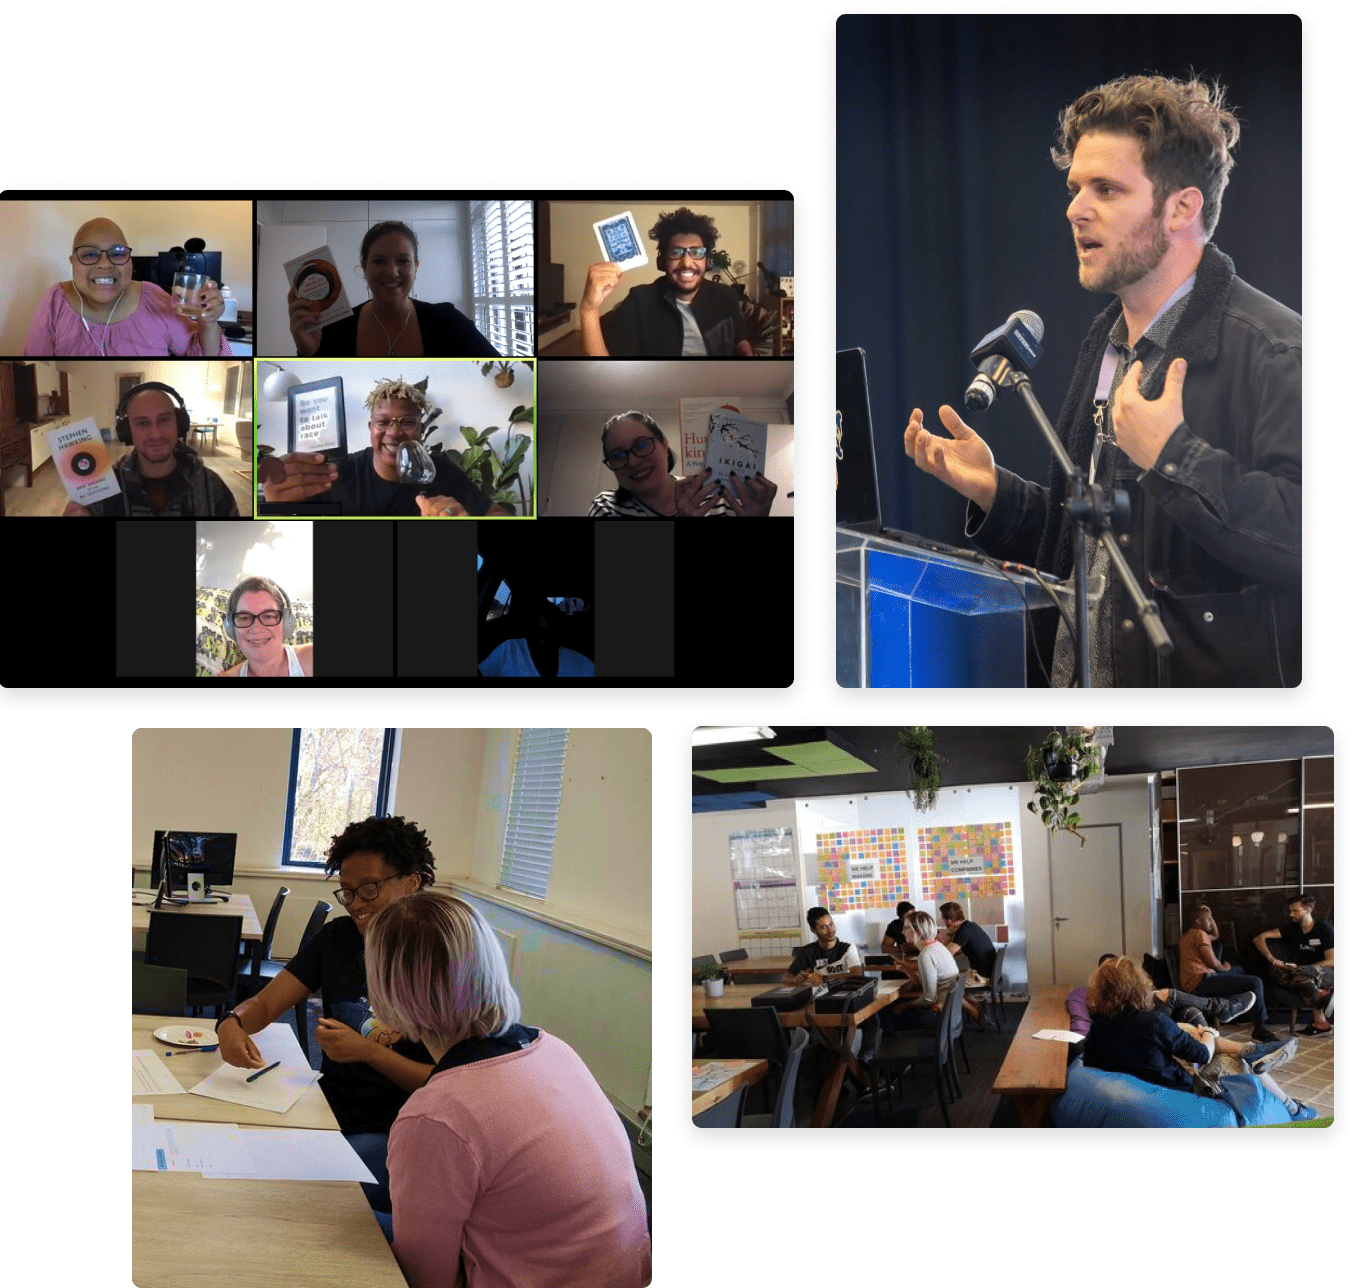 Collection of photos for mentorships